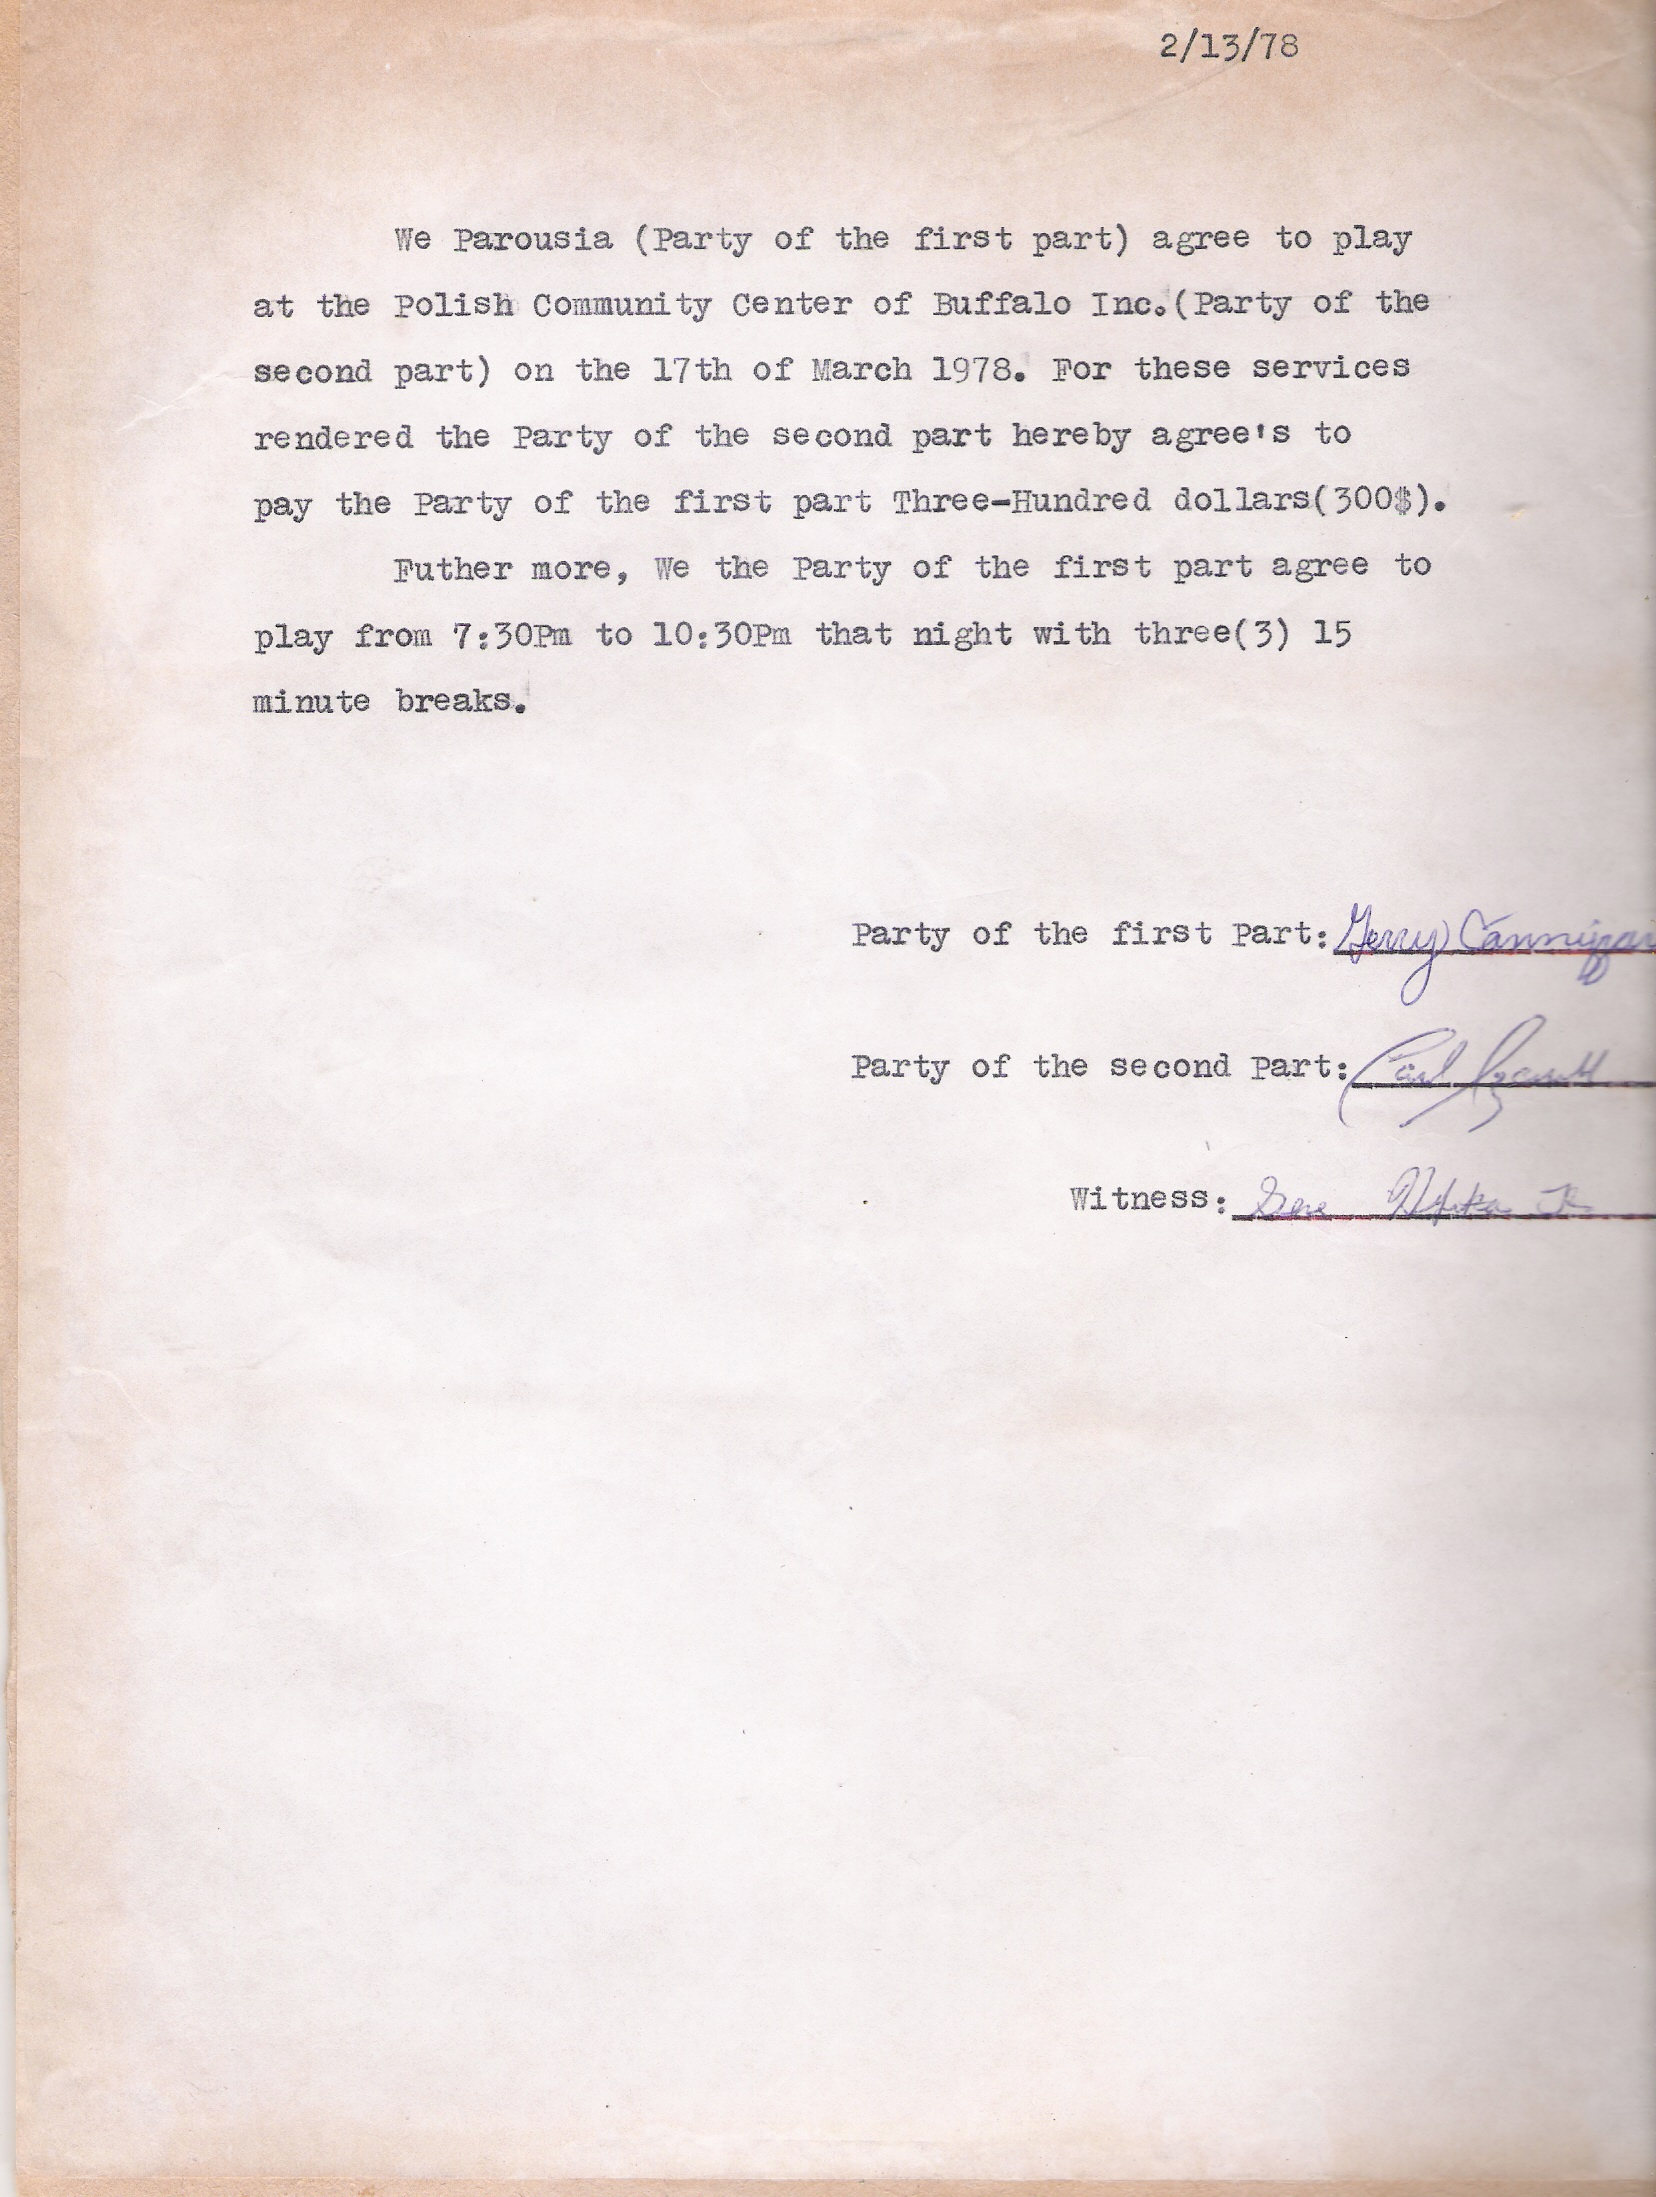 (32) Polish Community Center contract March 17, 1978